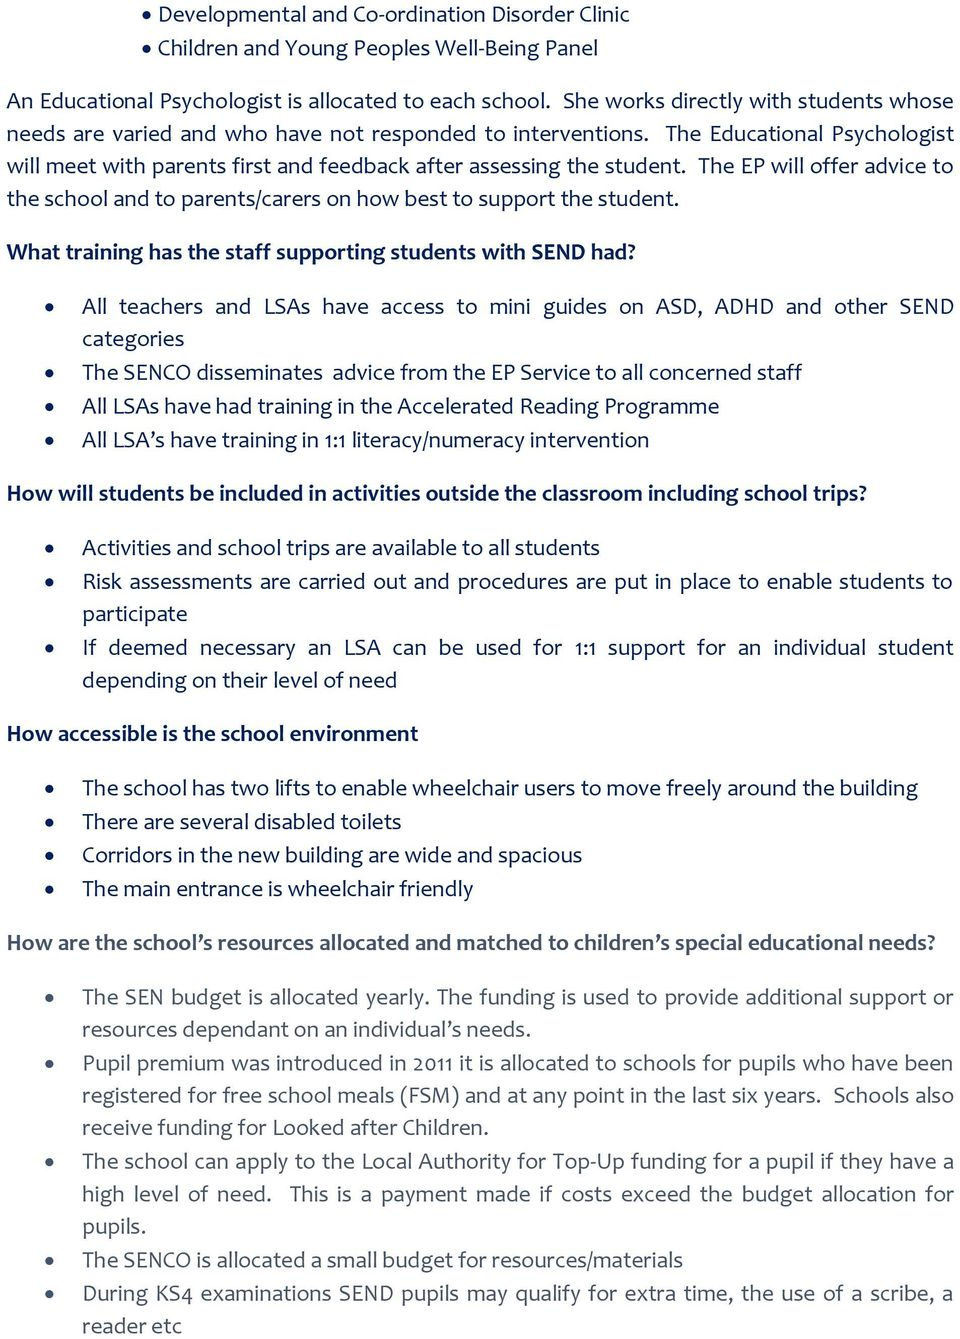 The EP will offer advice to the school and to parents/carers on how best to support the student. What training has the staff supporting students with SEND had?